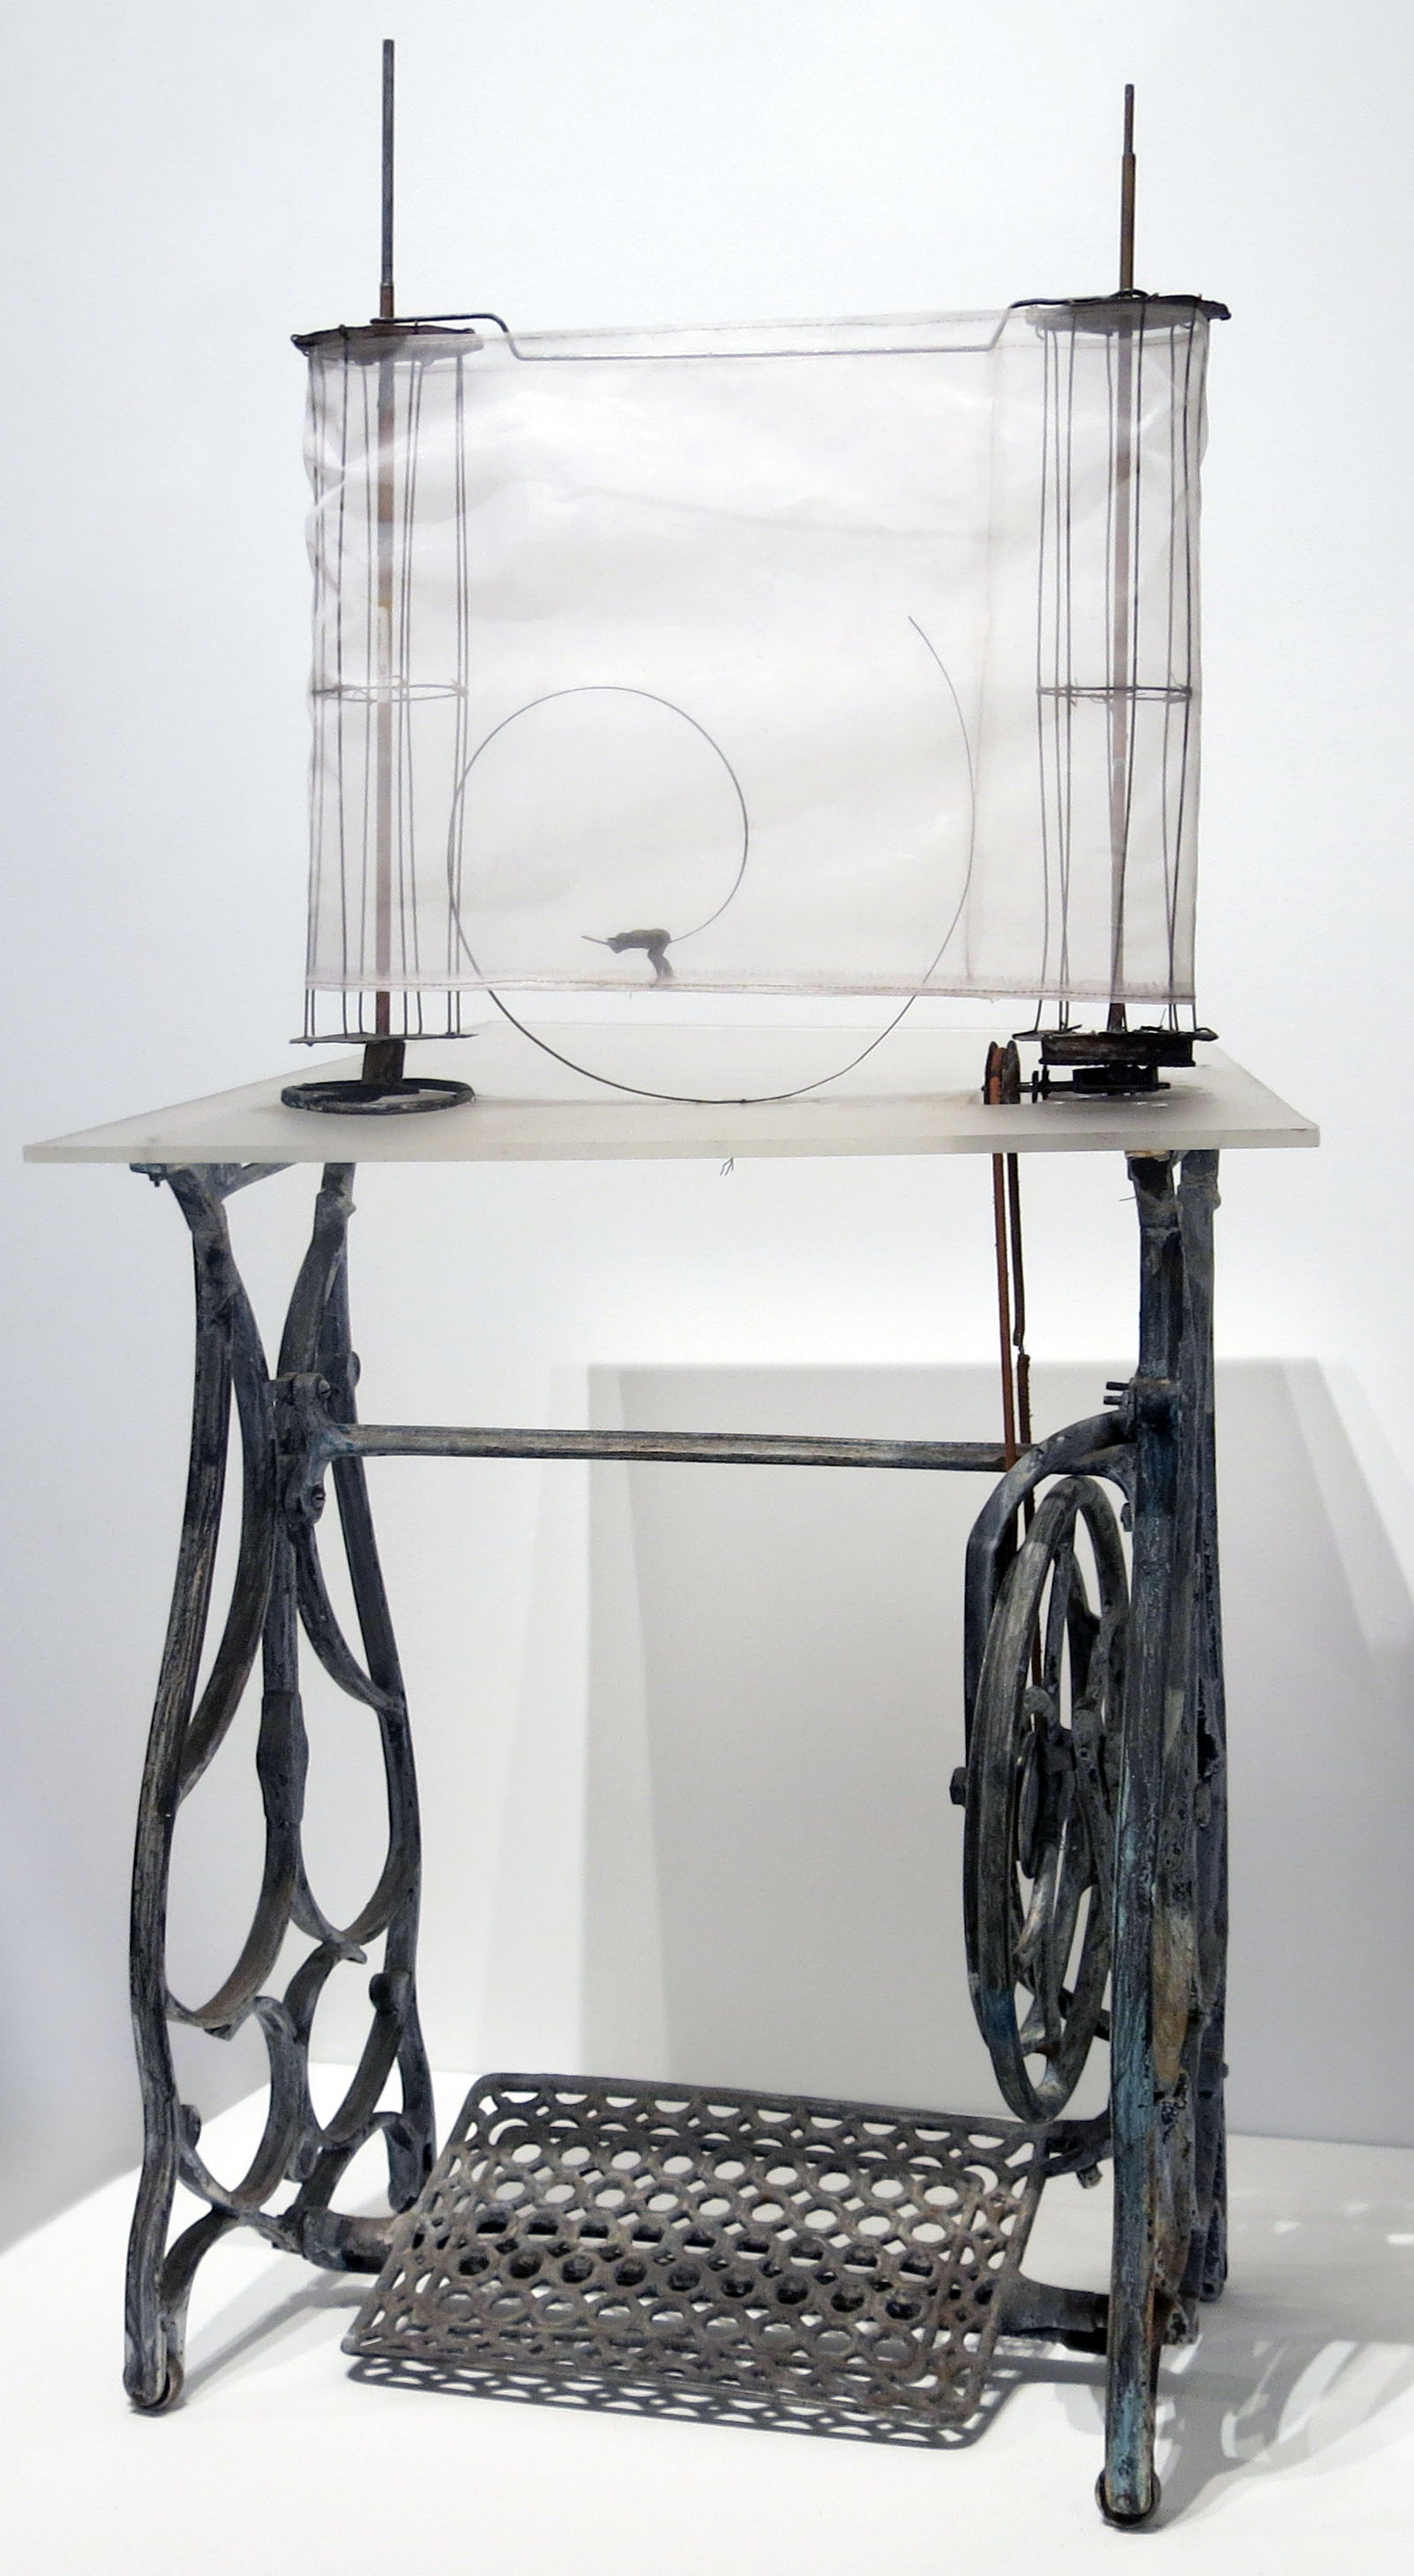 June Leaf,  Figure Running on the Seam,  2014, cast iron, tin, plexiglas, mesh, acrylic, and leather, 50h x 26w x 20.25d in.